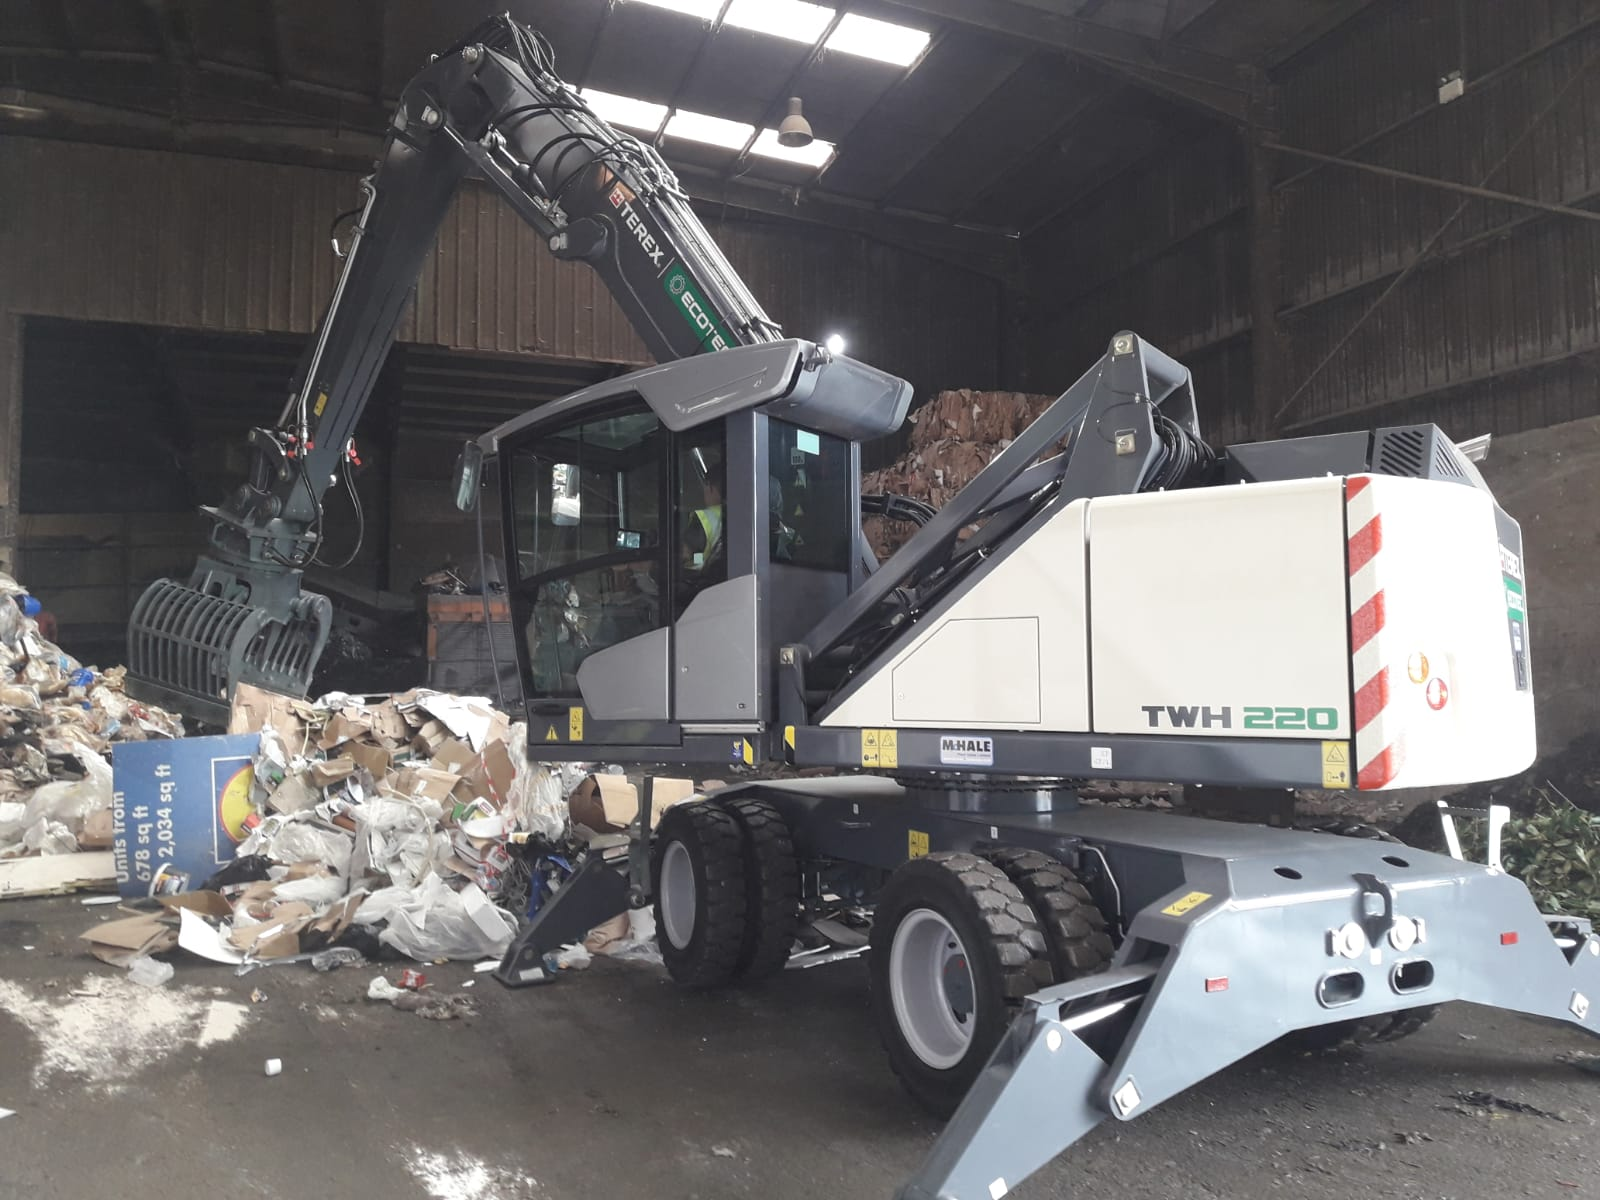 TWH220 Waste Lifter